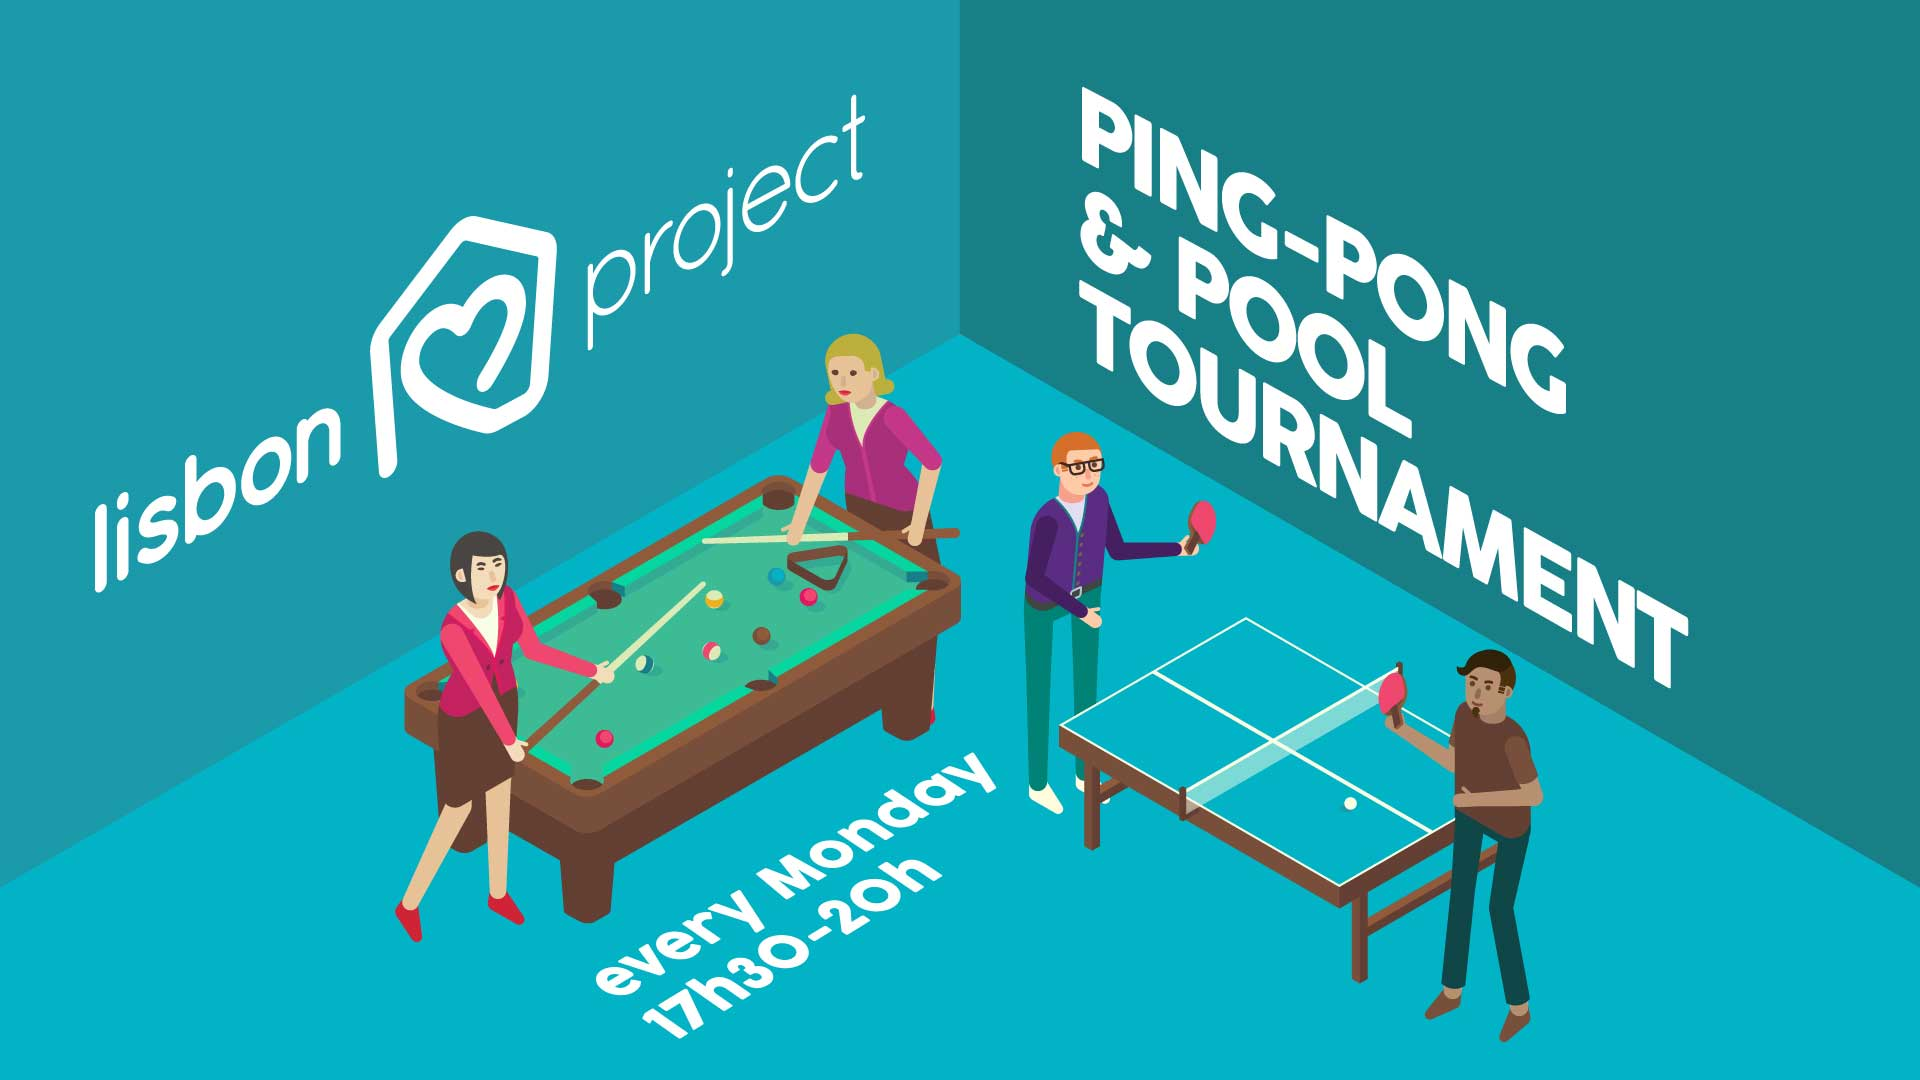 Ping-Pong & Pool Tournament